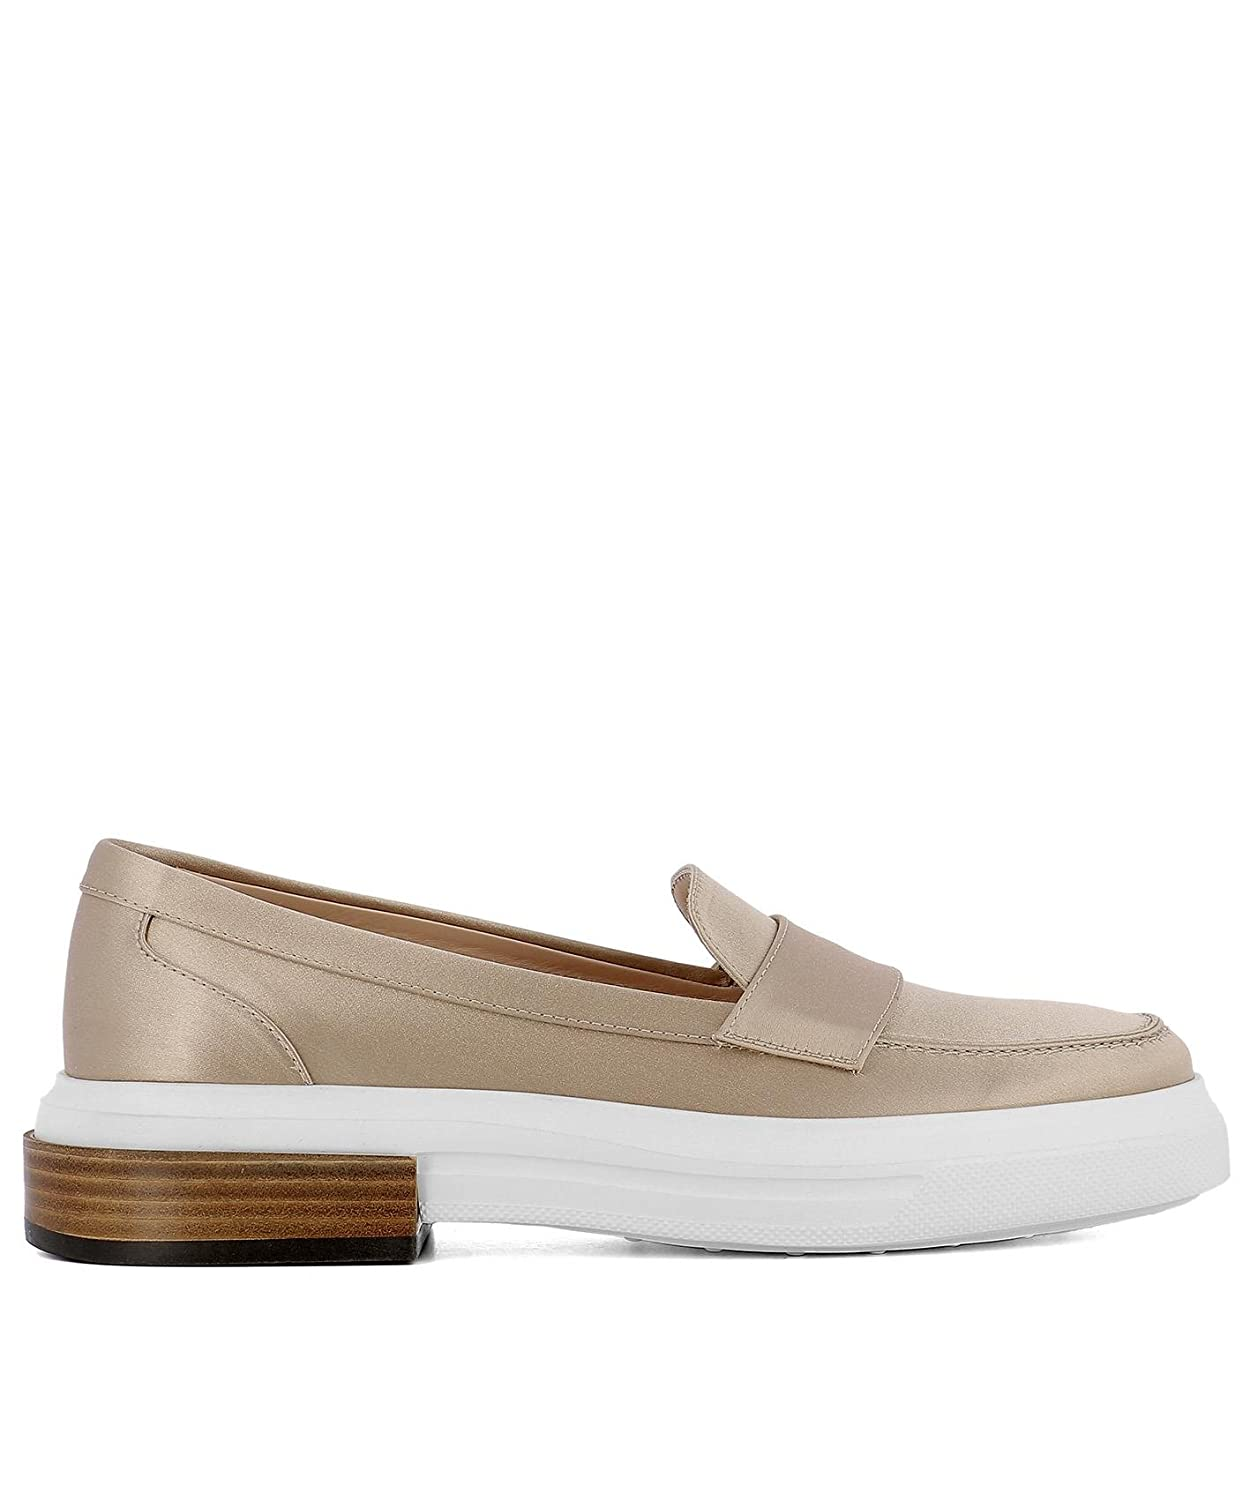 Tods Mocasines Para Mujer Beige Beige It - Marke Größe, Color Beige, Talla 38.5 IT - Marke Größe 38.5: Amazon.es: Zapatos y complementos